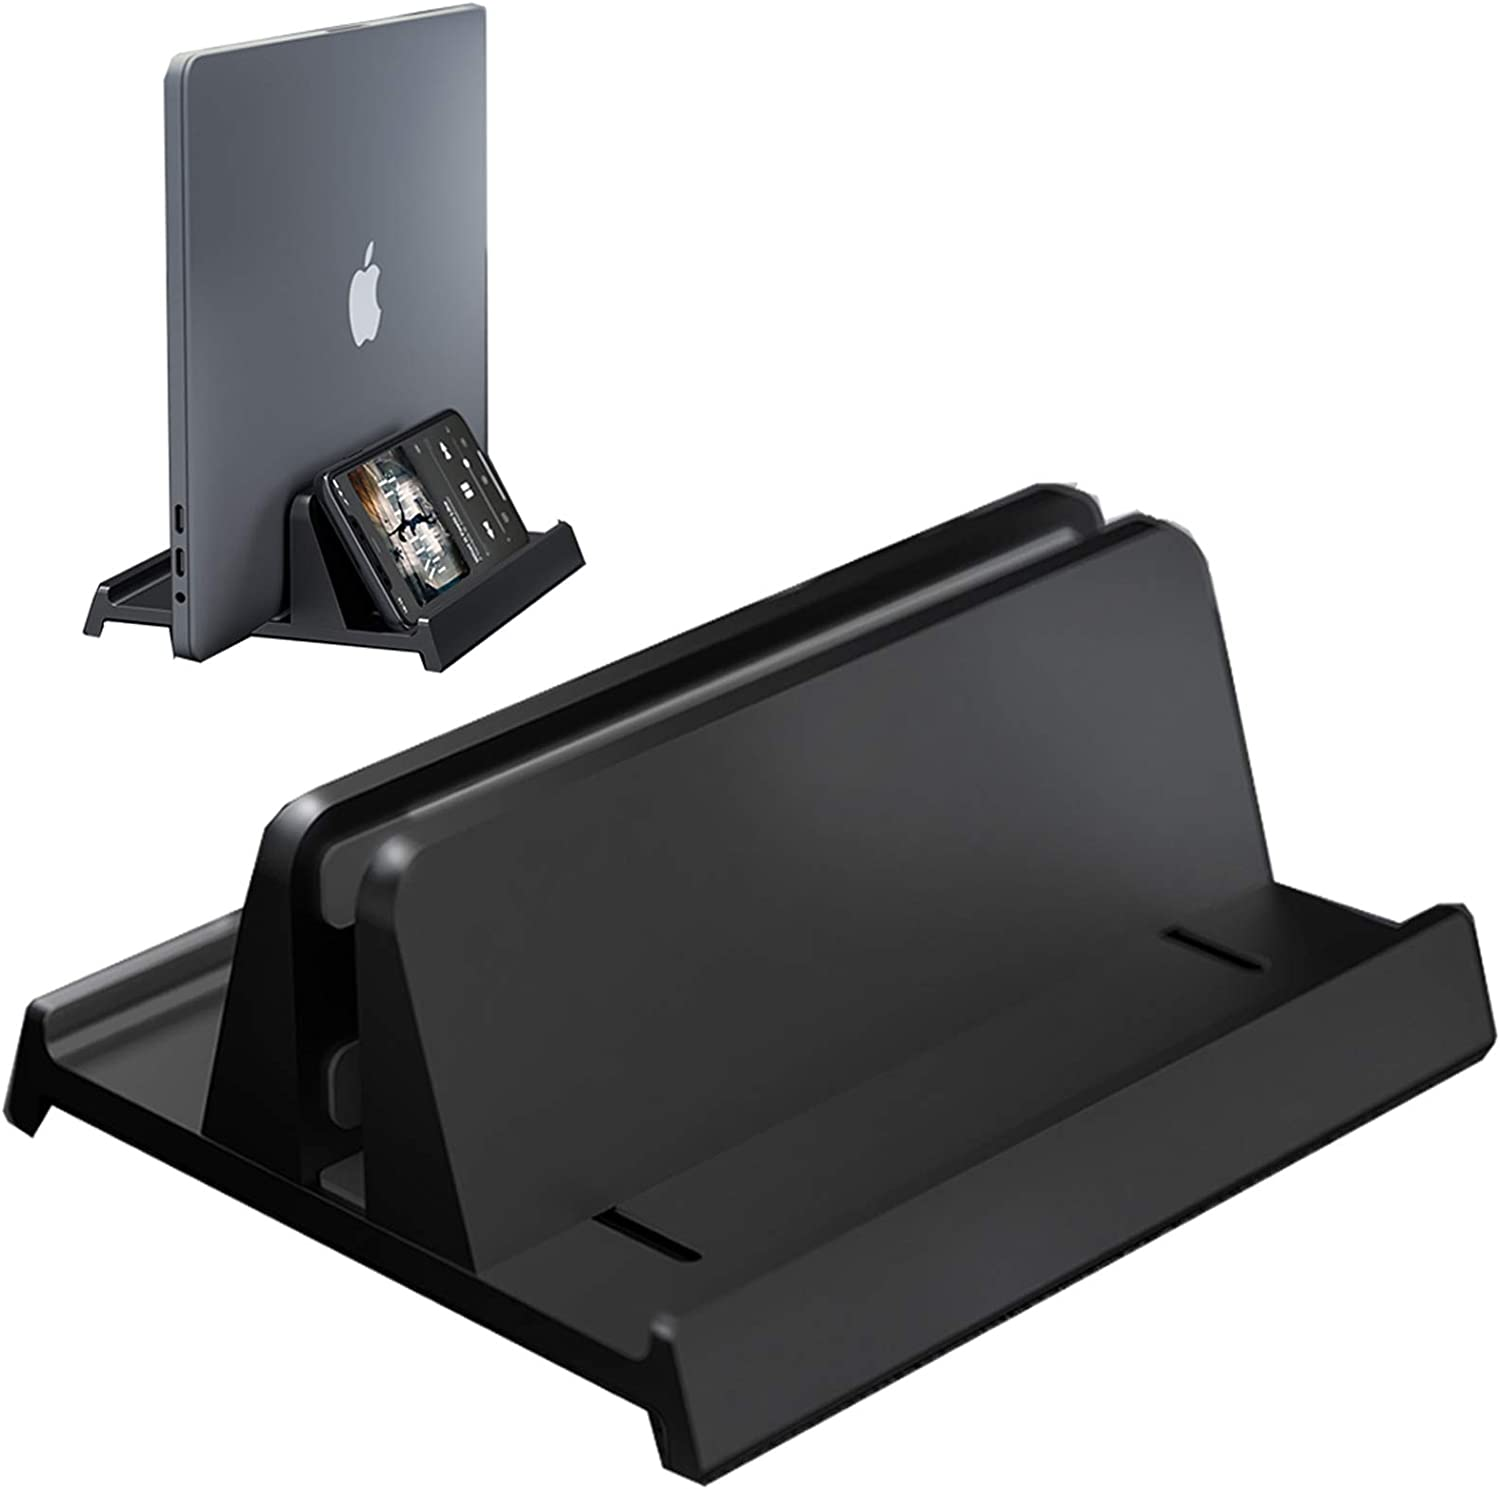 Vertical Laptop Stand Holder,Newly Designed Adjustable Desktop Notebook Dock 3 in 1 Space-Saving Stand for MacBook Pro Air,iPad,HP,Dell,Microsoft Surface,Lenovo up to 17 inches (Black)